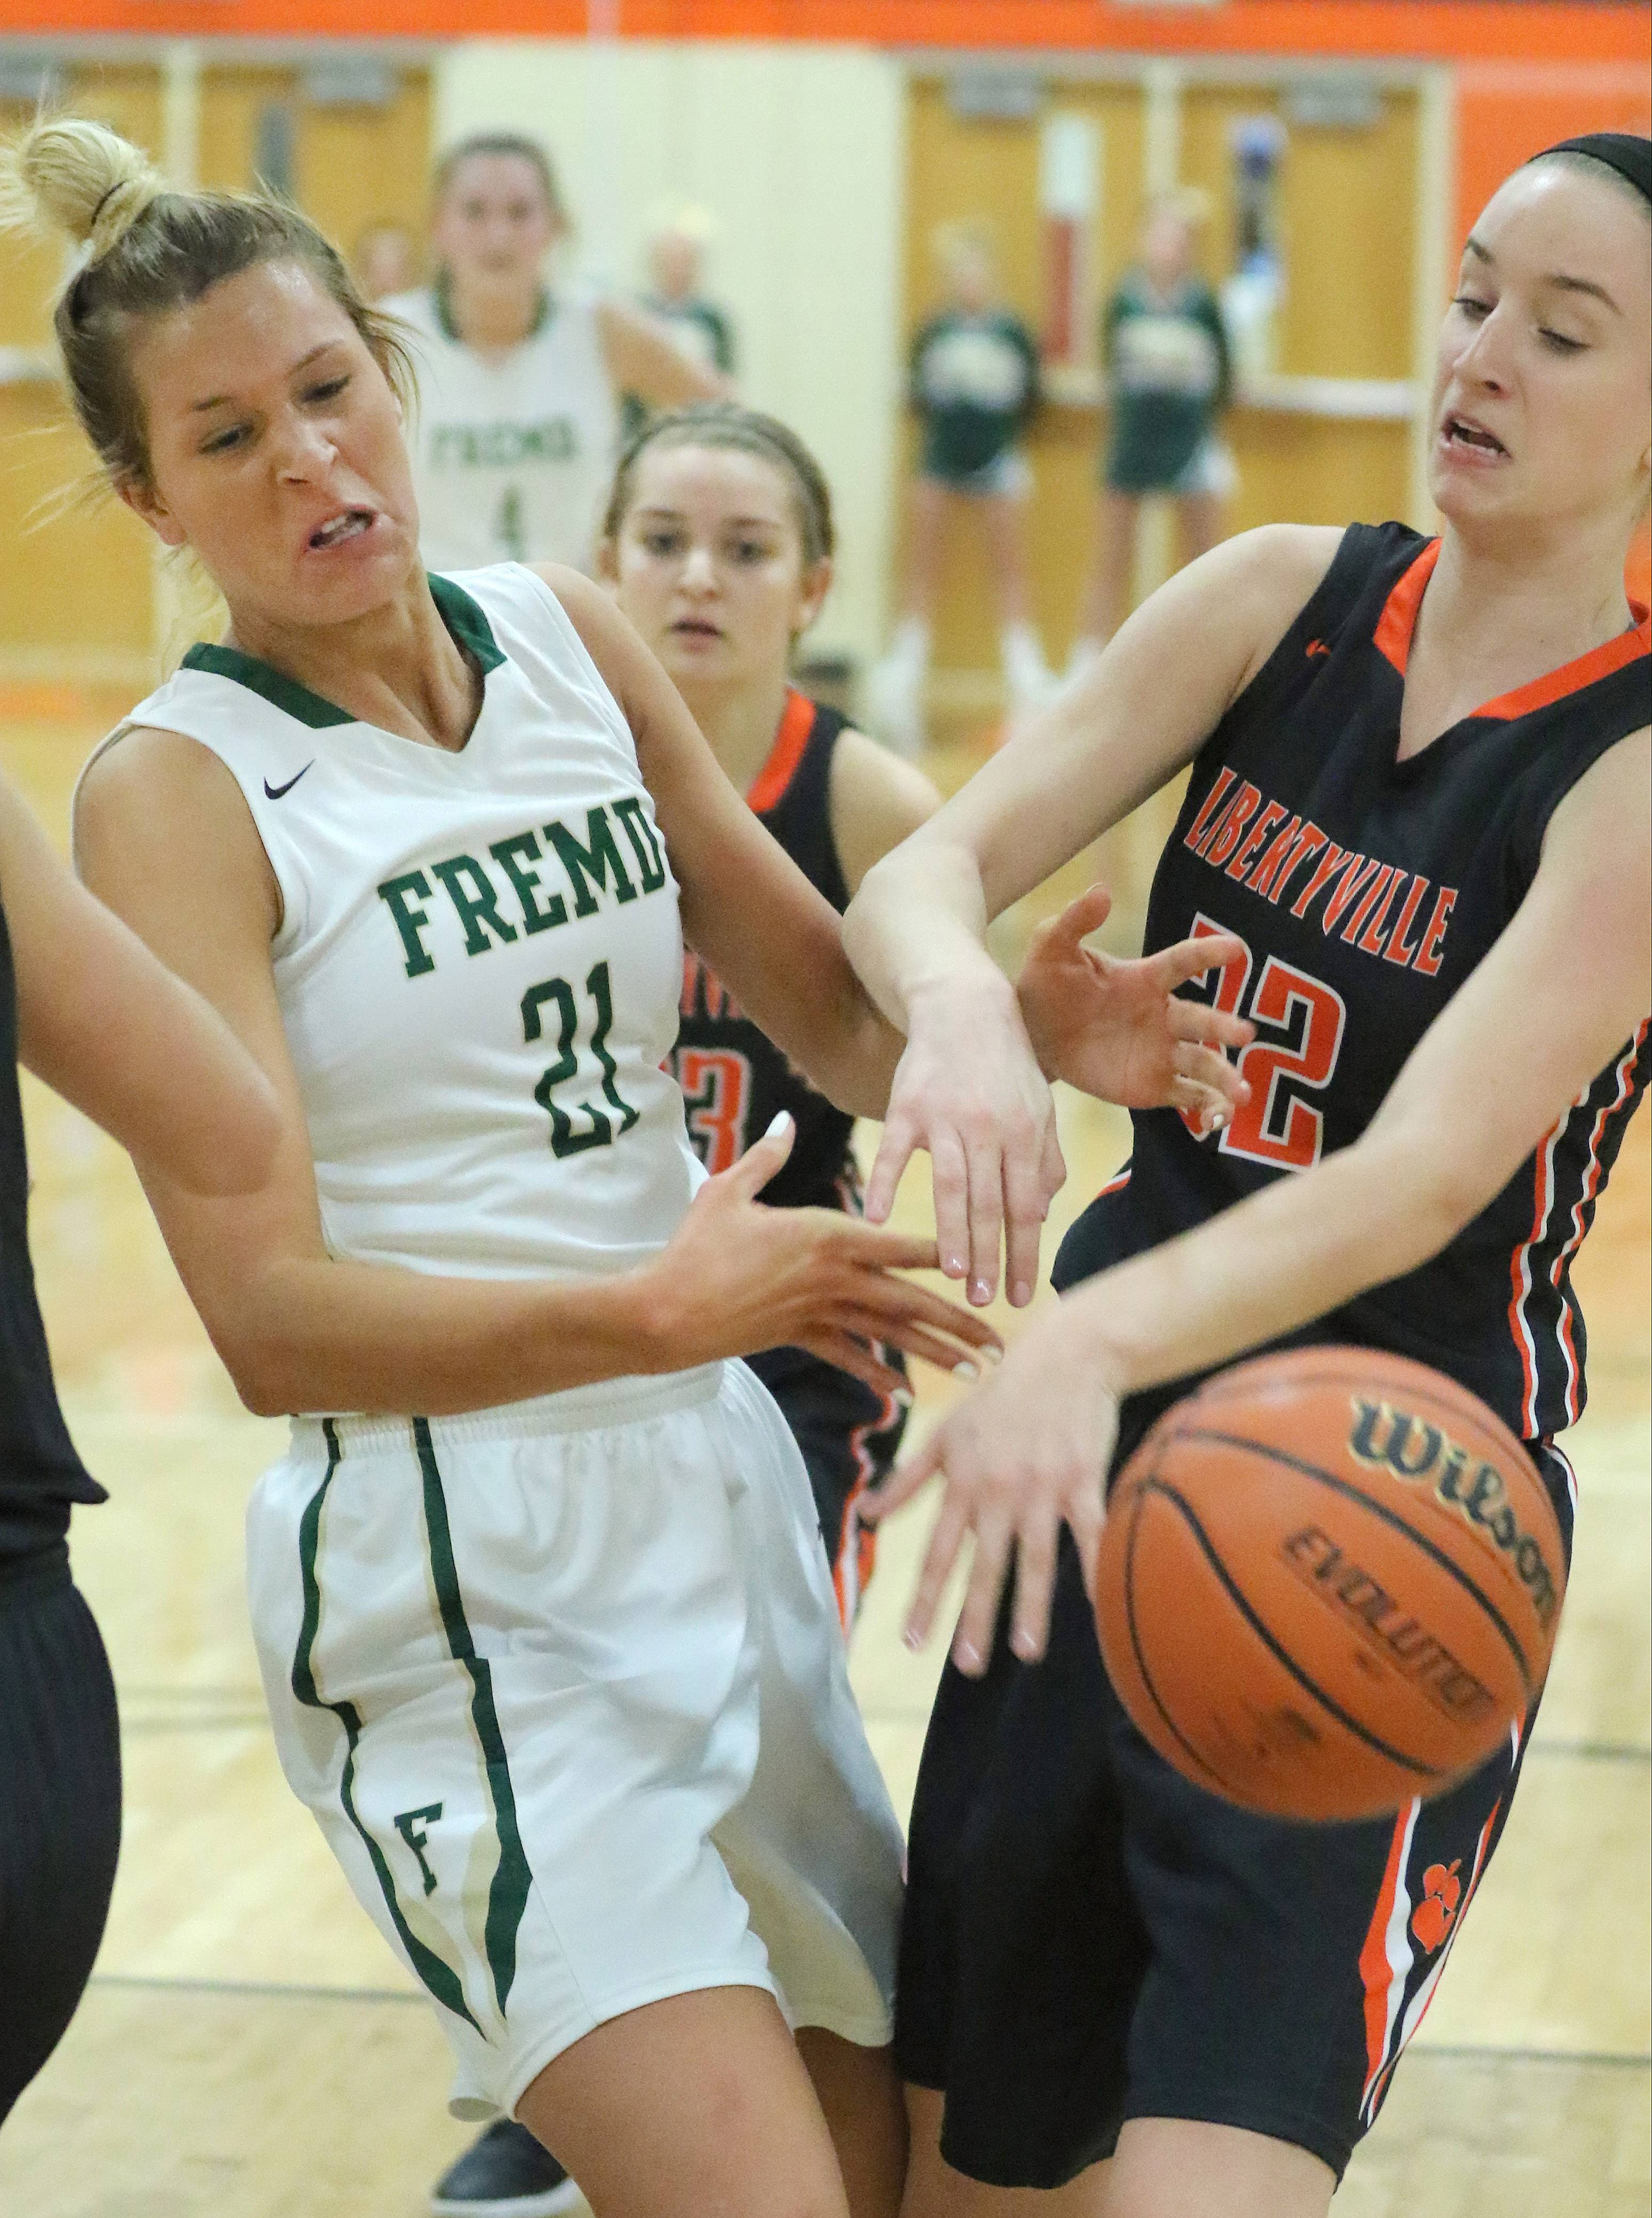 Fremd's Grace Tworek, left, and Libertyville's Caroline Frea battle for a rebound during Class 4A sectional semifinal play Monday at Libertyville.